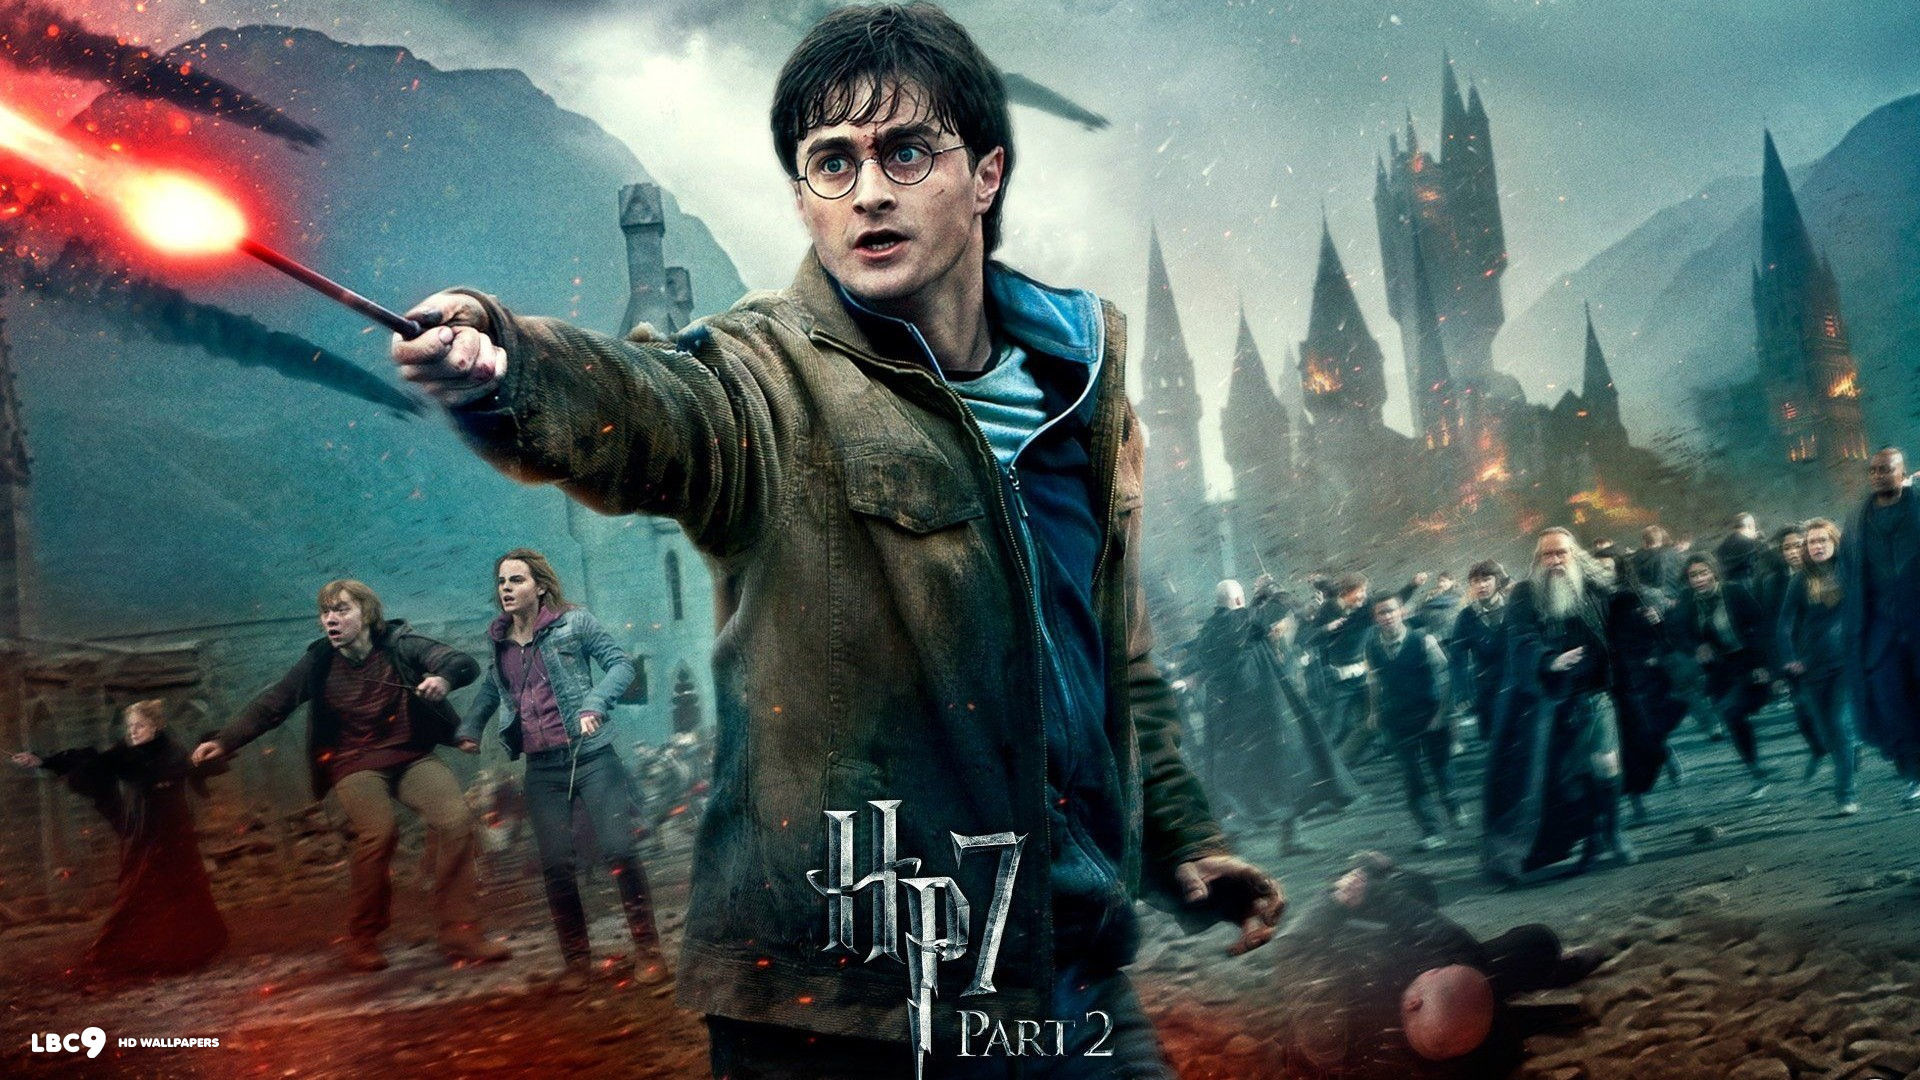 harry potter and the deathly hallows part 2 wide 1080×1920